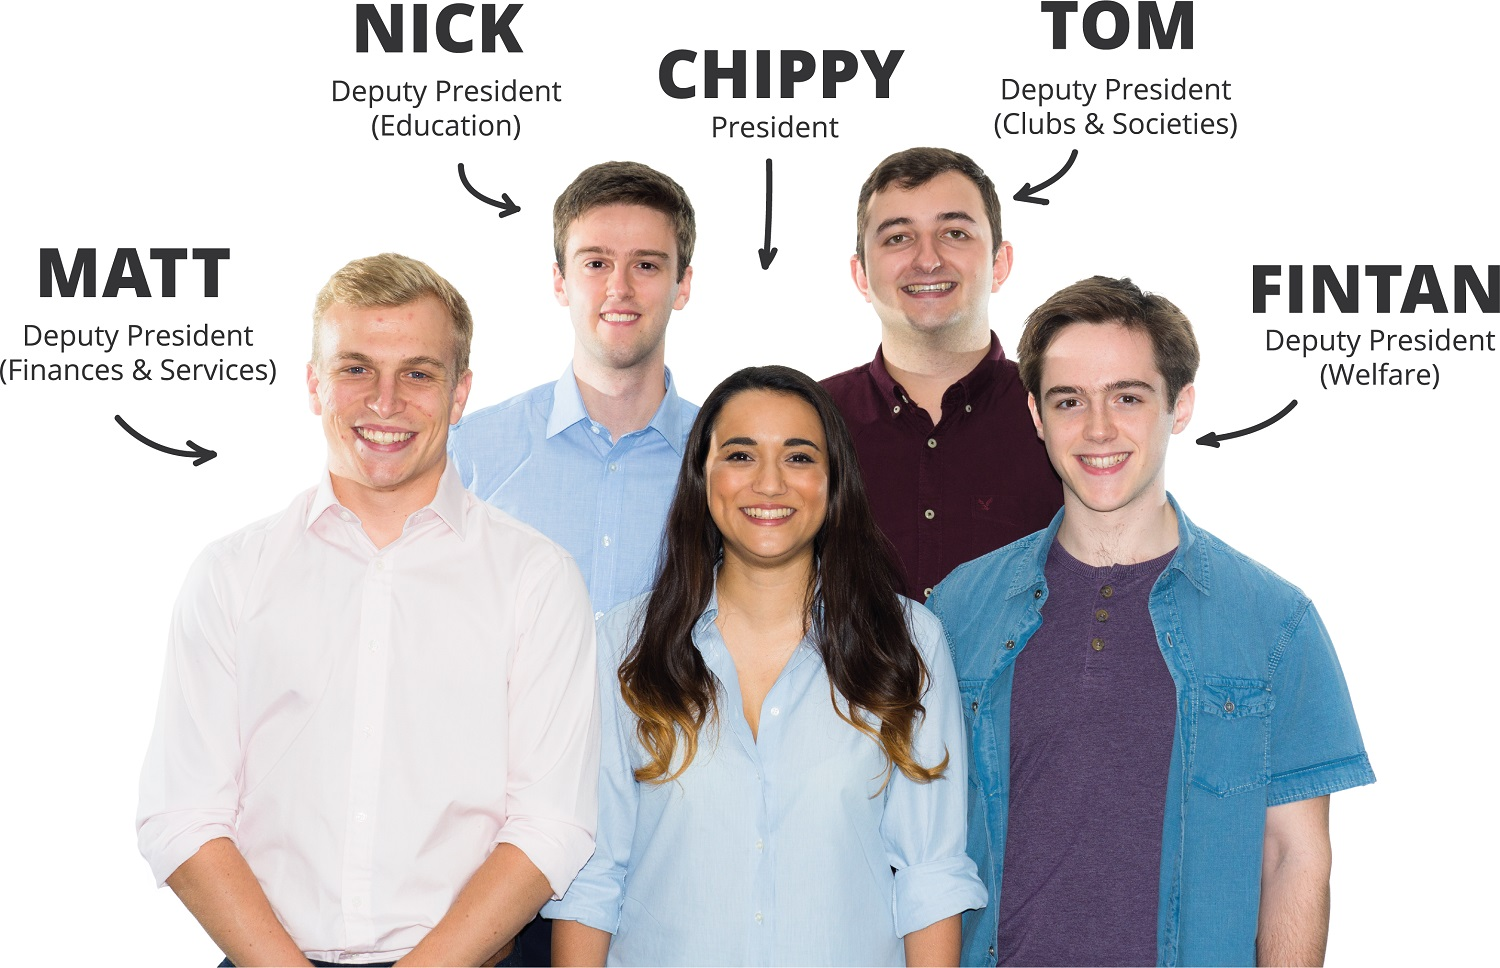 Imperial College Union Officer Trustees: Nick (Deputy Presdent Educaction), Tom (Deputy President Clubs & Societie), Matt (Deputy President Finance & Services), Chippy (President), and Fintan (Deputy President Welfare)